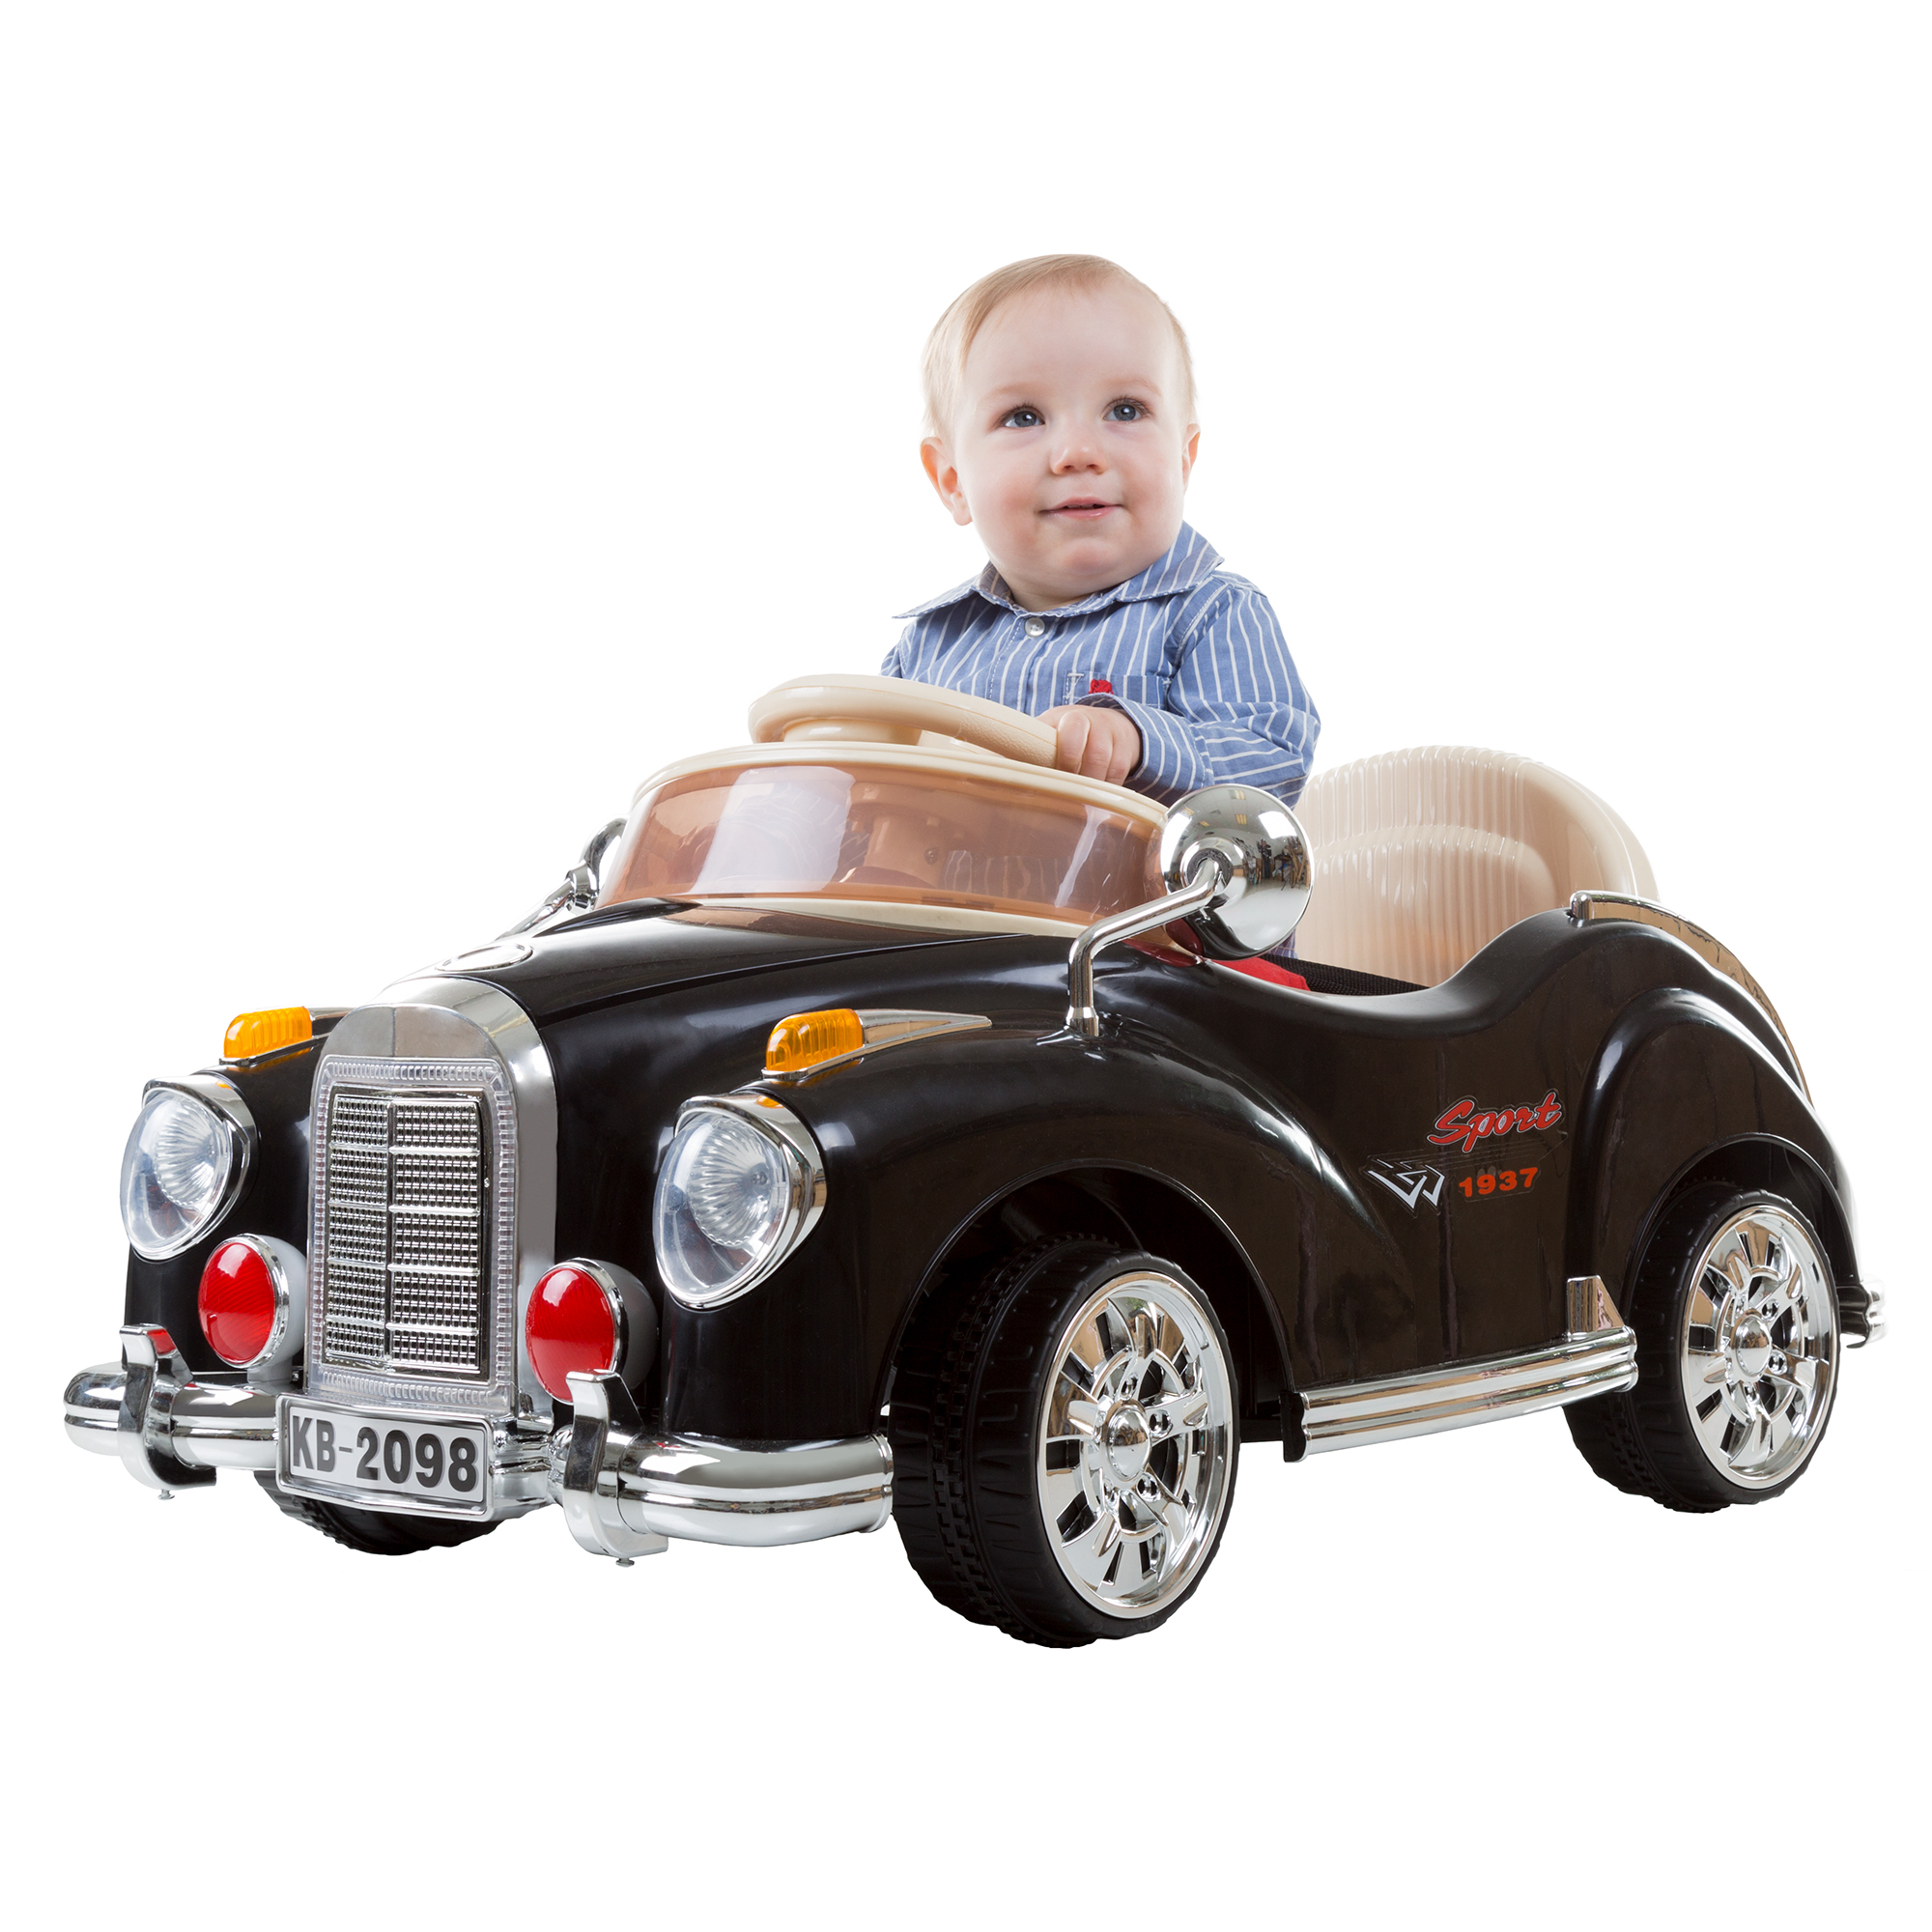 Ride On Toy Car Battery Ed Clic Coupe With Remote Control And Sound By Rockin Rollers Toys For Boys S 3 Year Olds Up Black